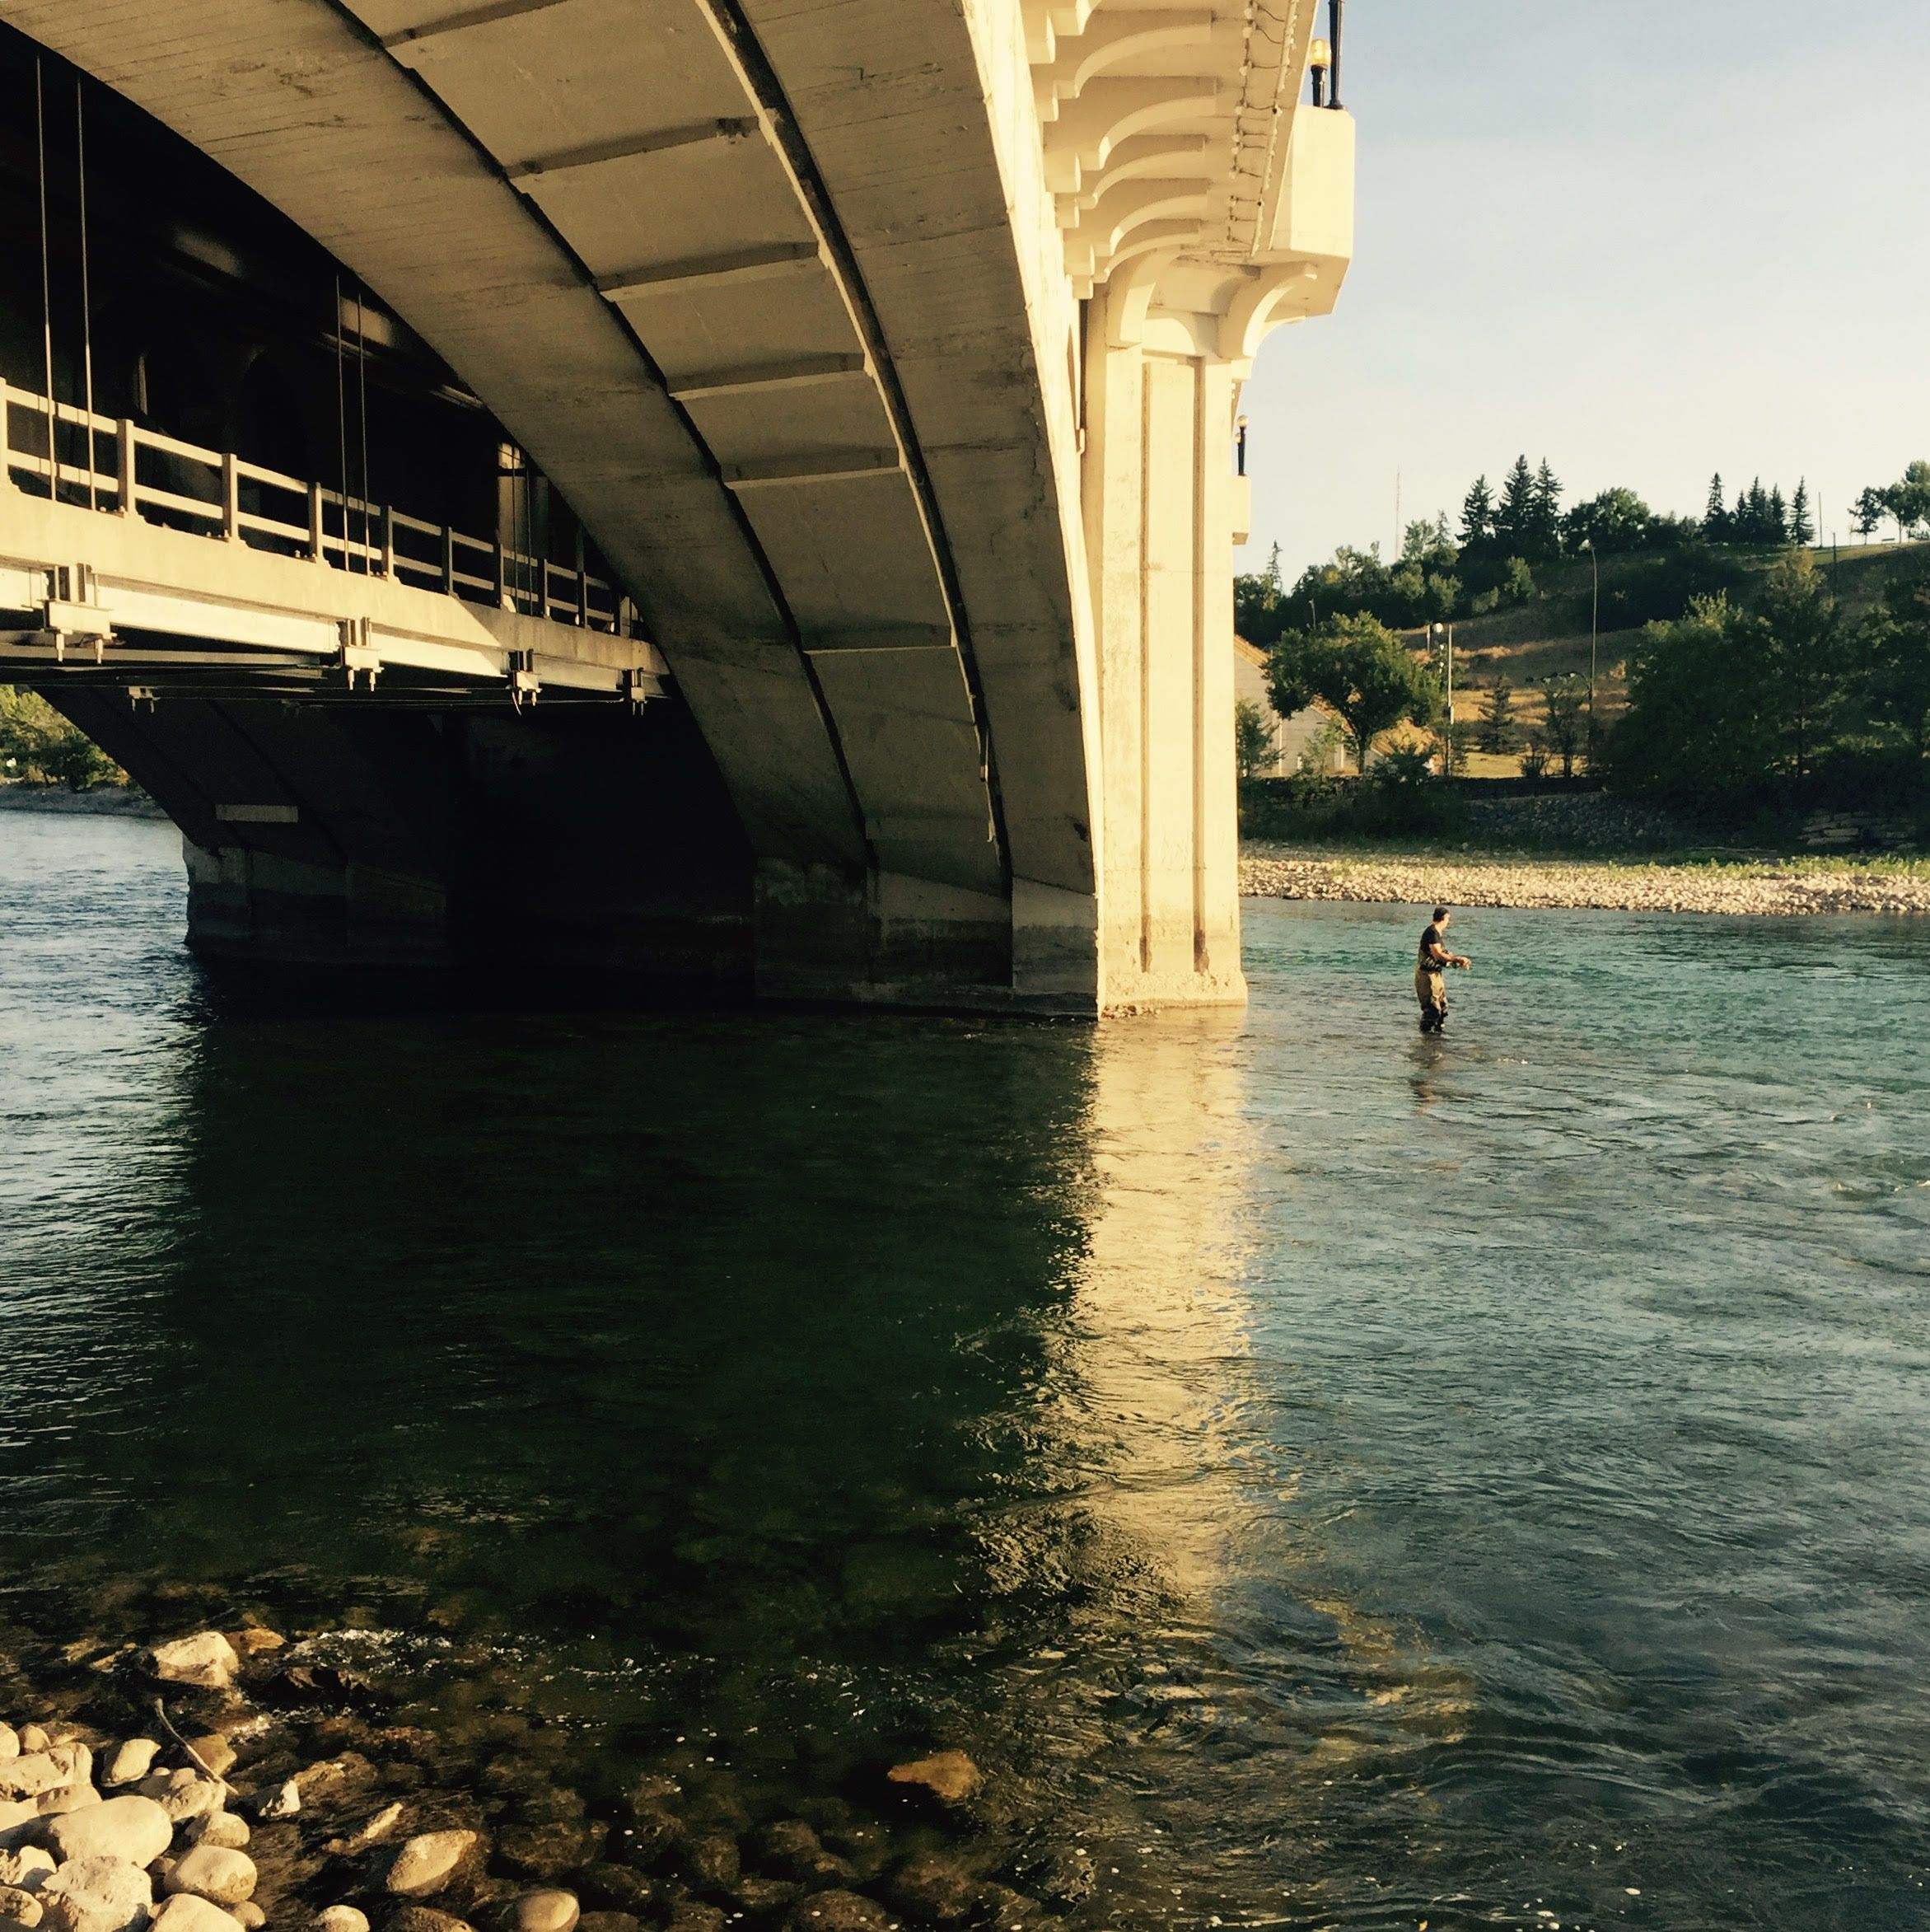 A Guy Flyfishing Under The Centrestreetbridge This